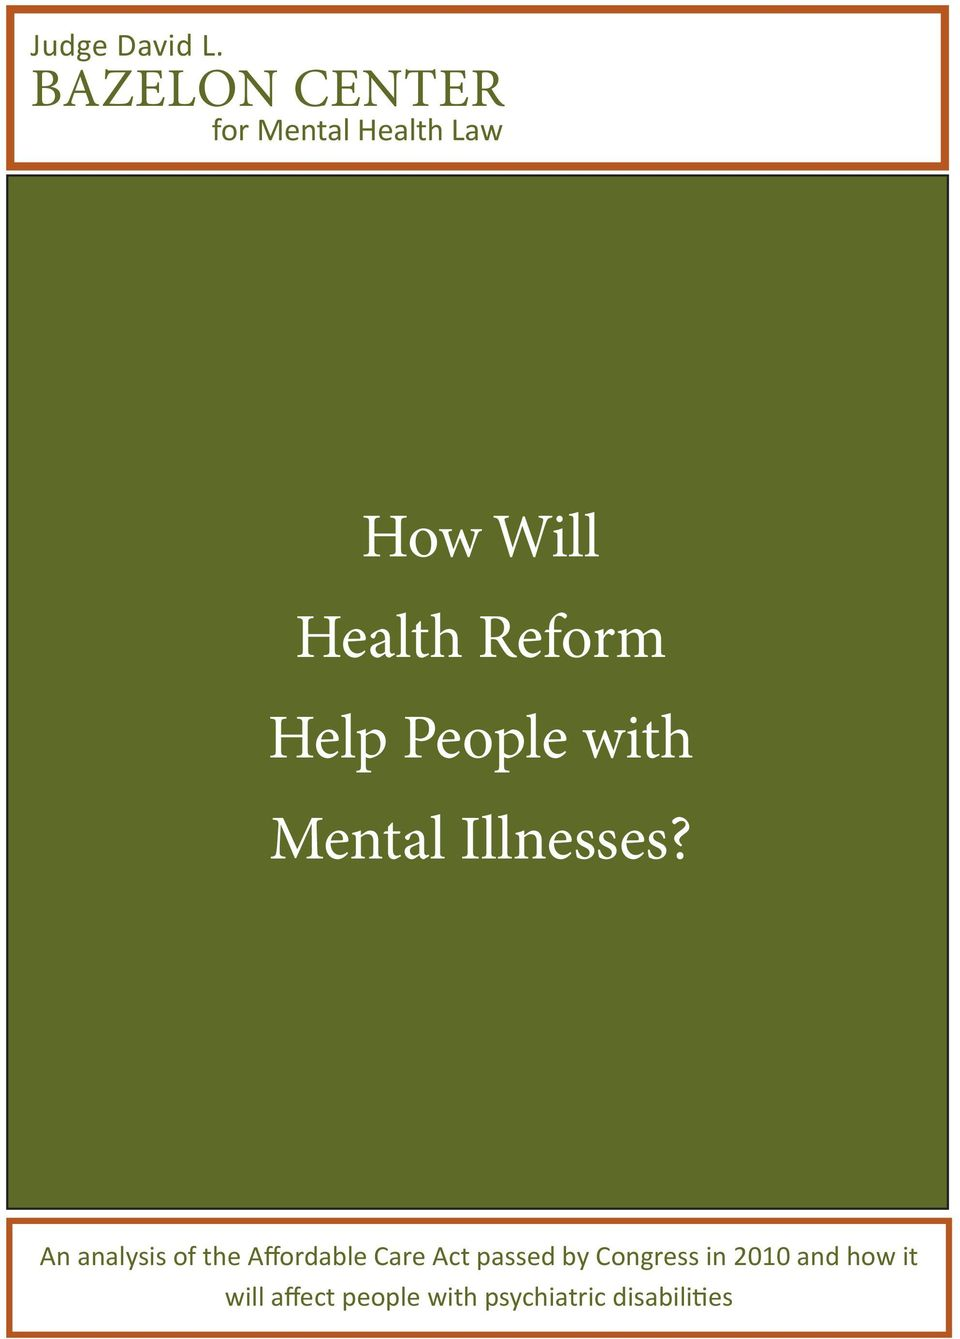 Reform Help People with Mental Illnesses?